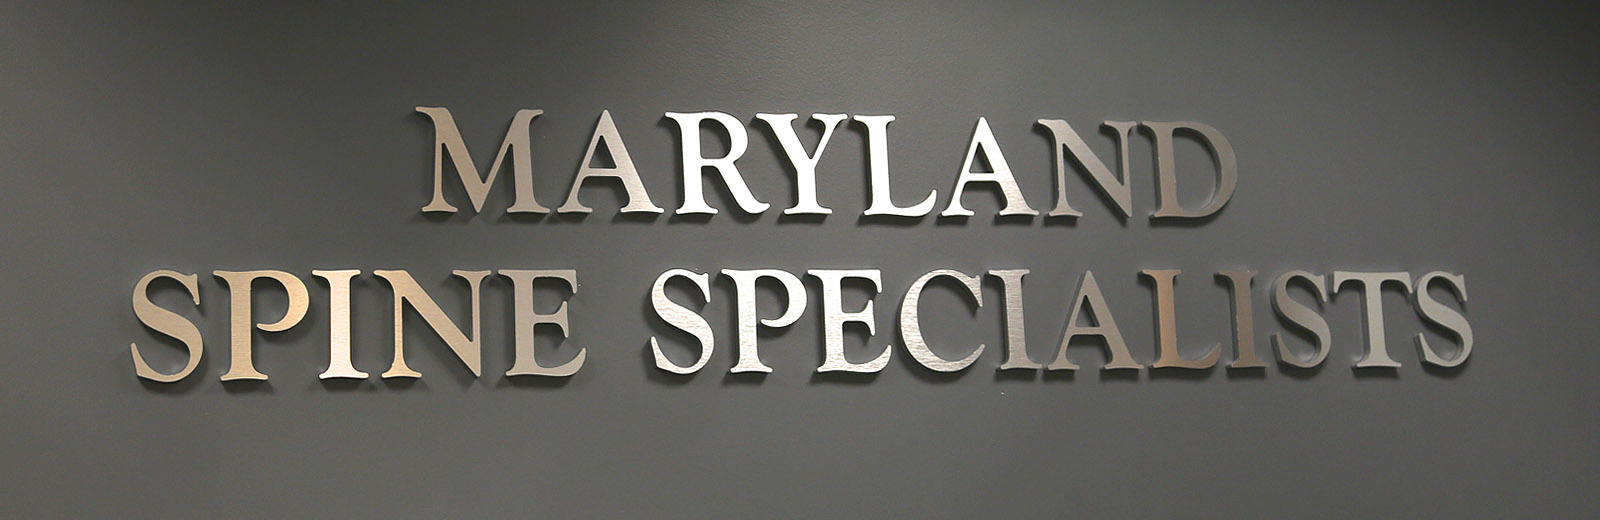 Maryland Spine Specialists